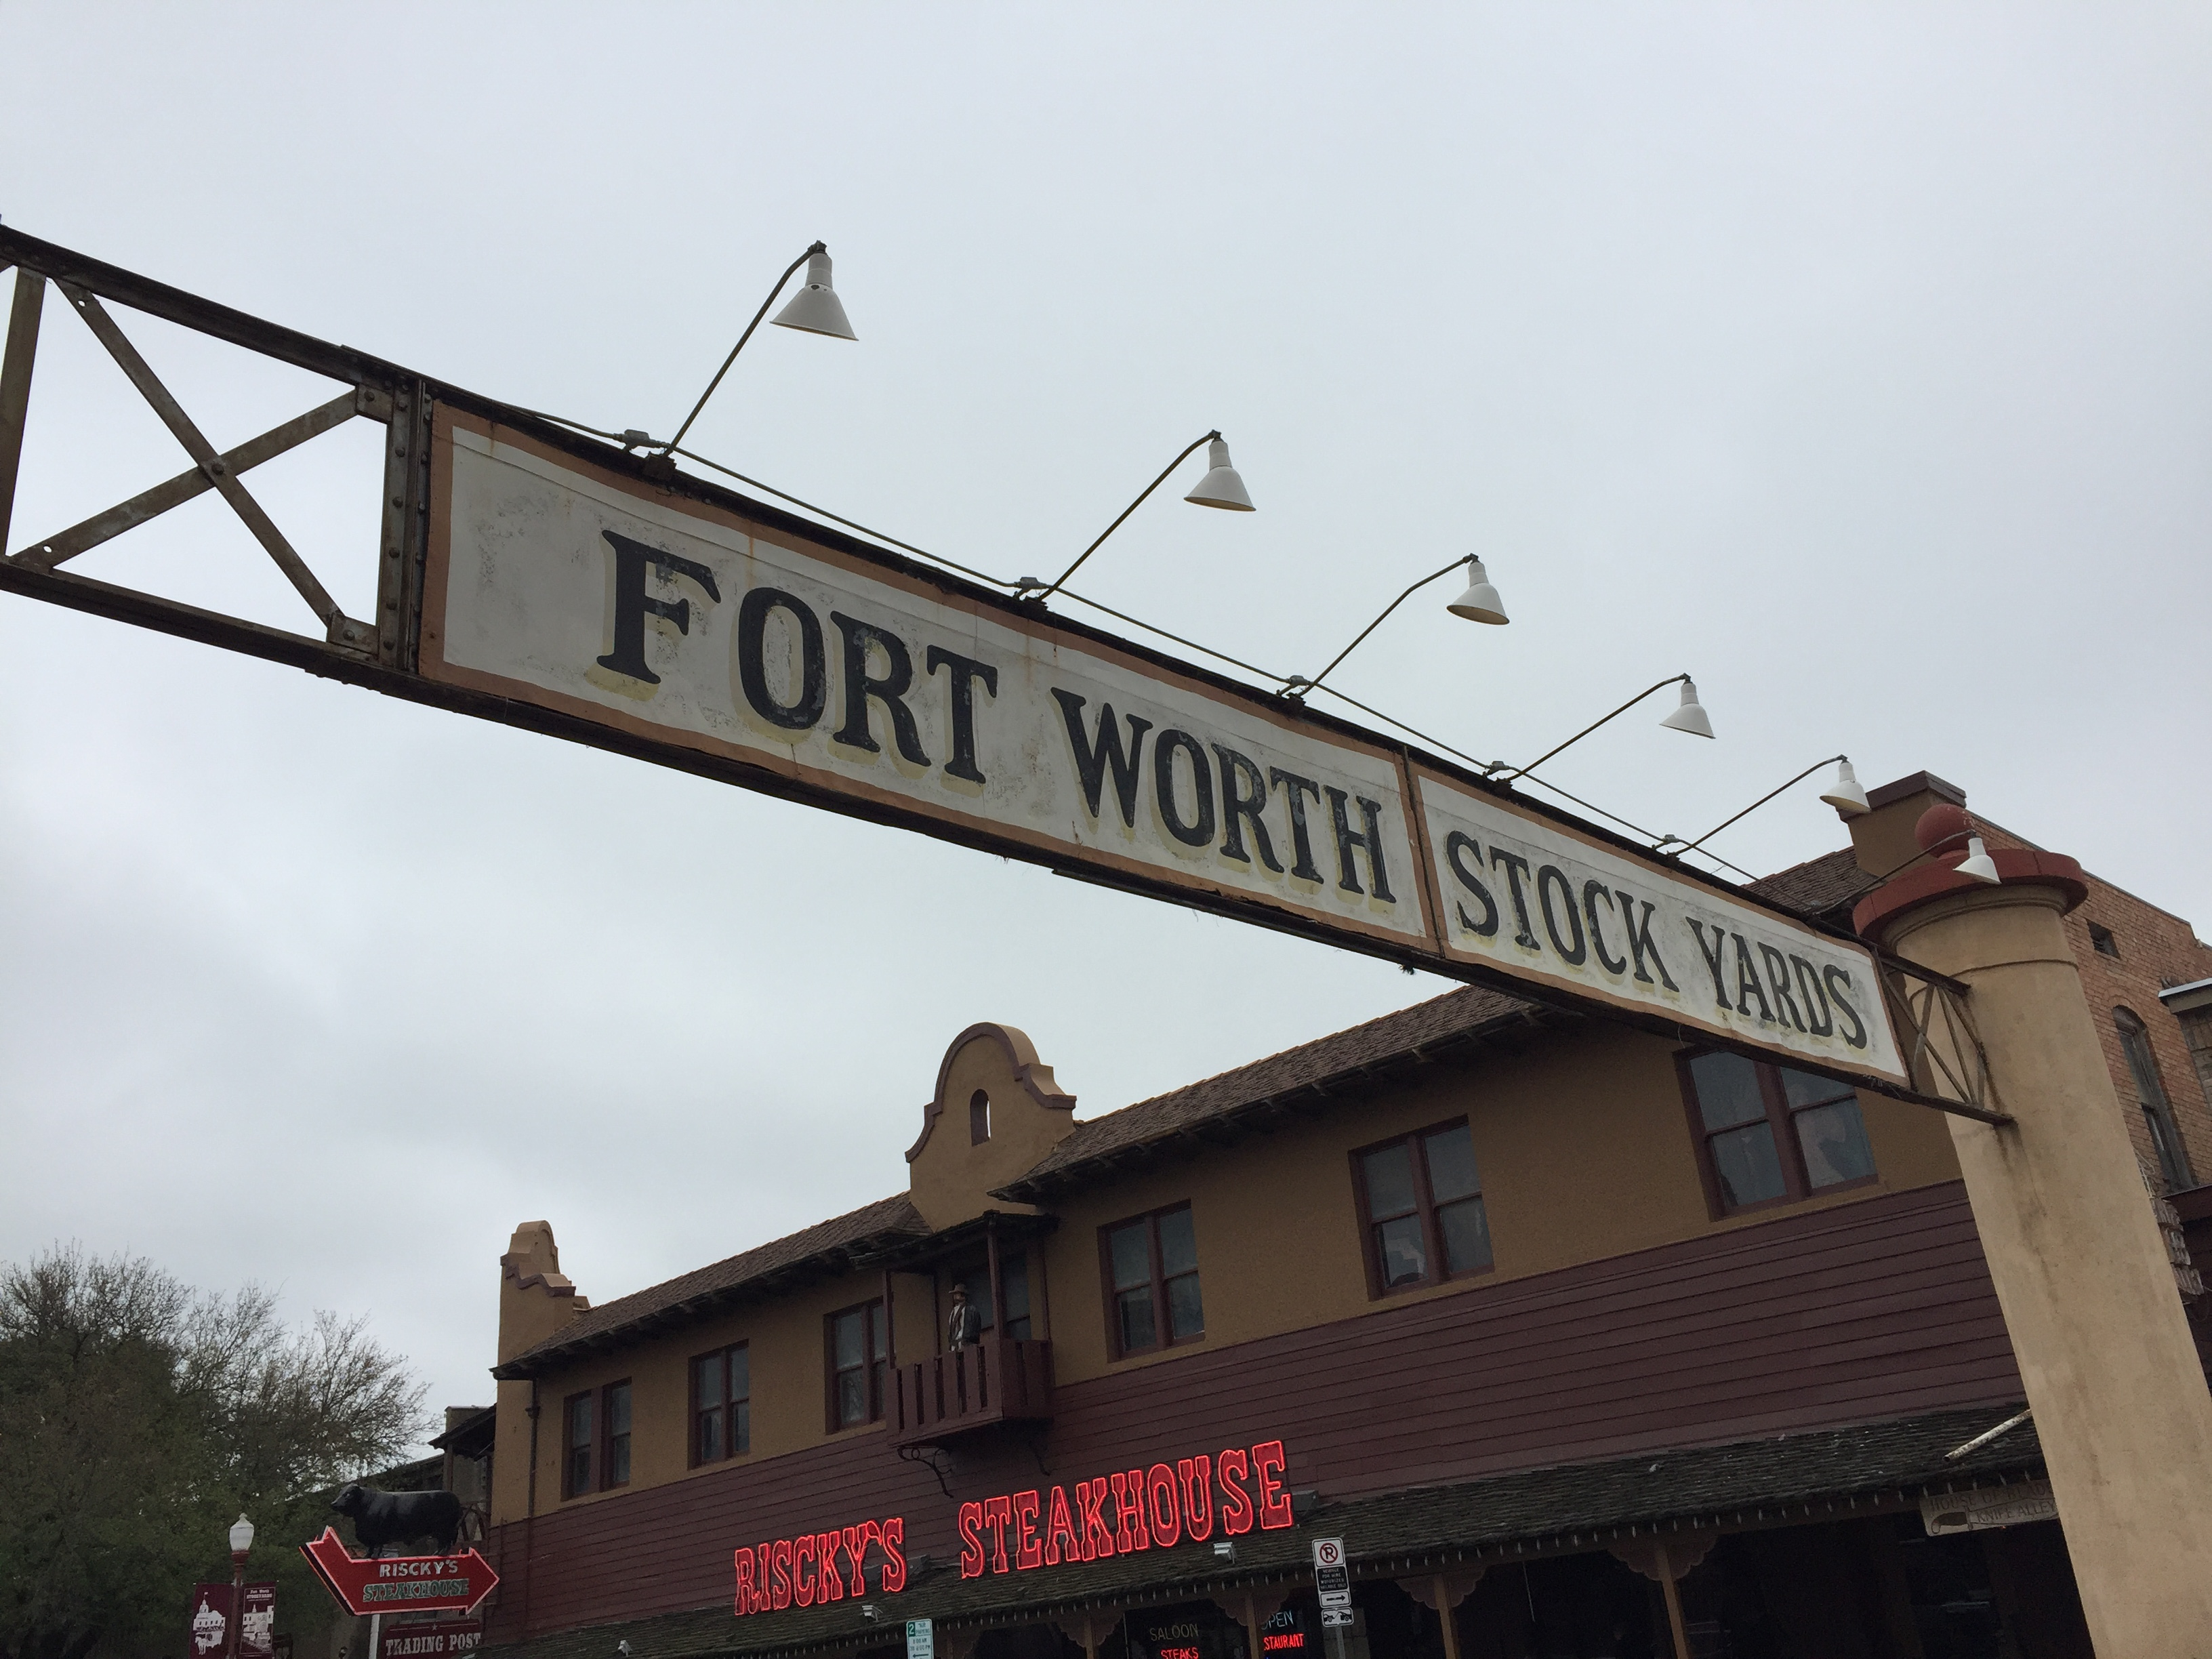 The Fort Worth Stockyards Food Wine Beer Travel